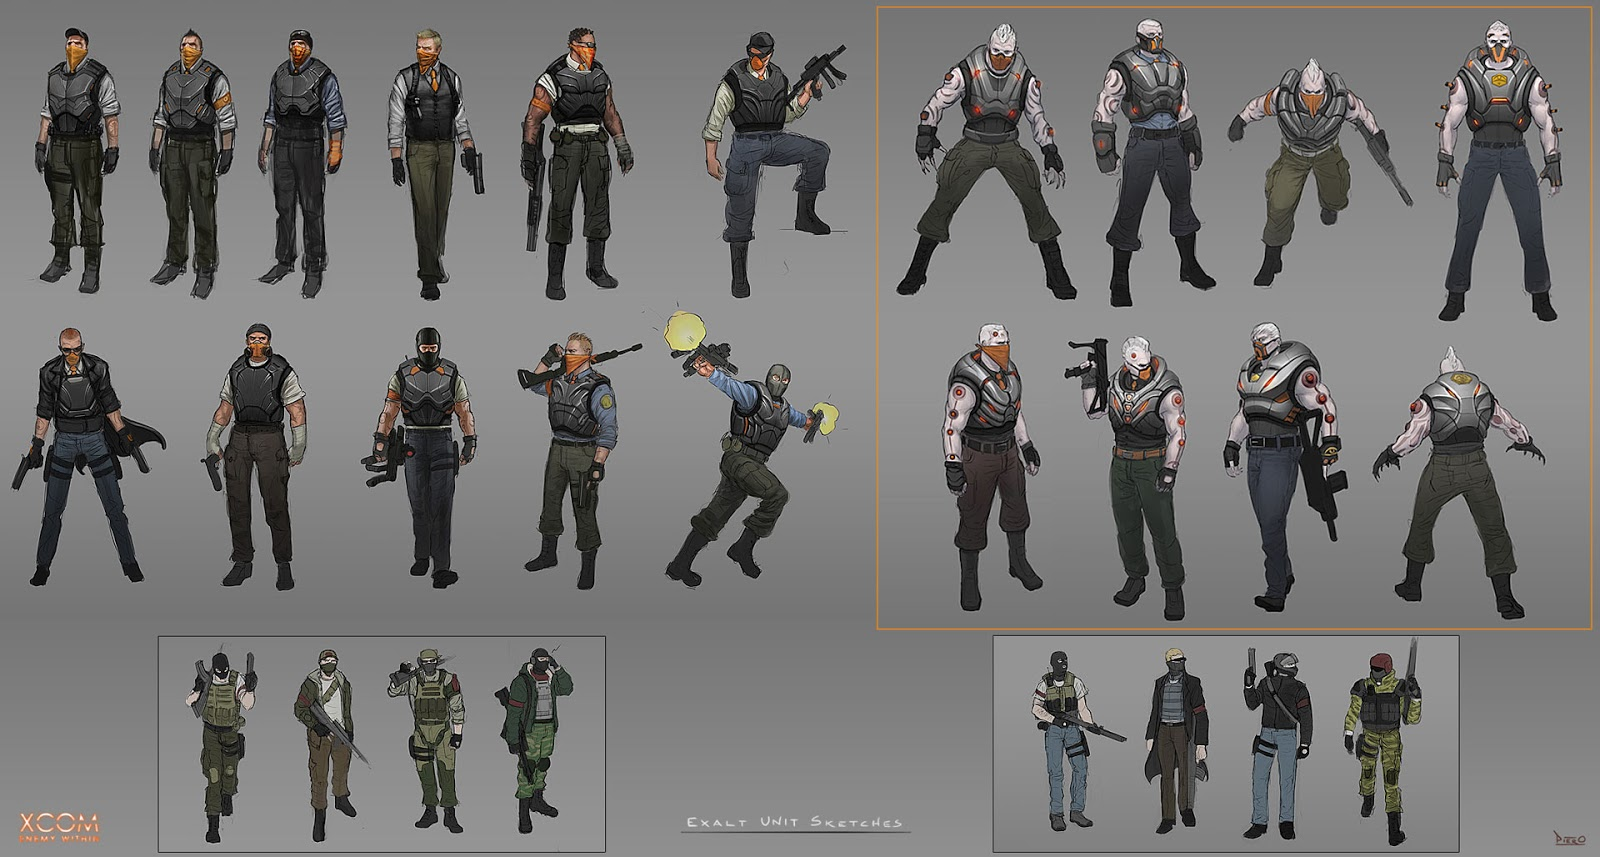 Piero Macgowan - Blog: XCOM: Enemy Within Concept Art